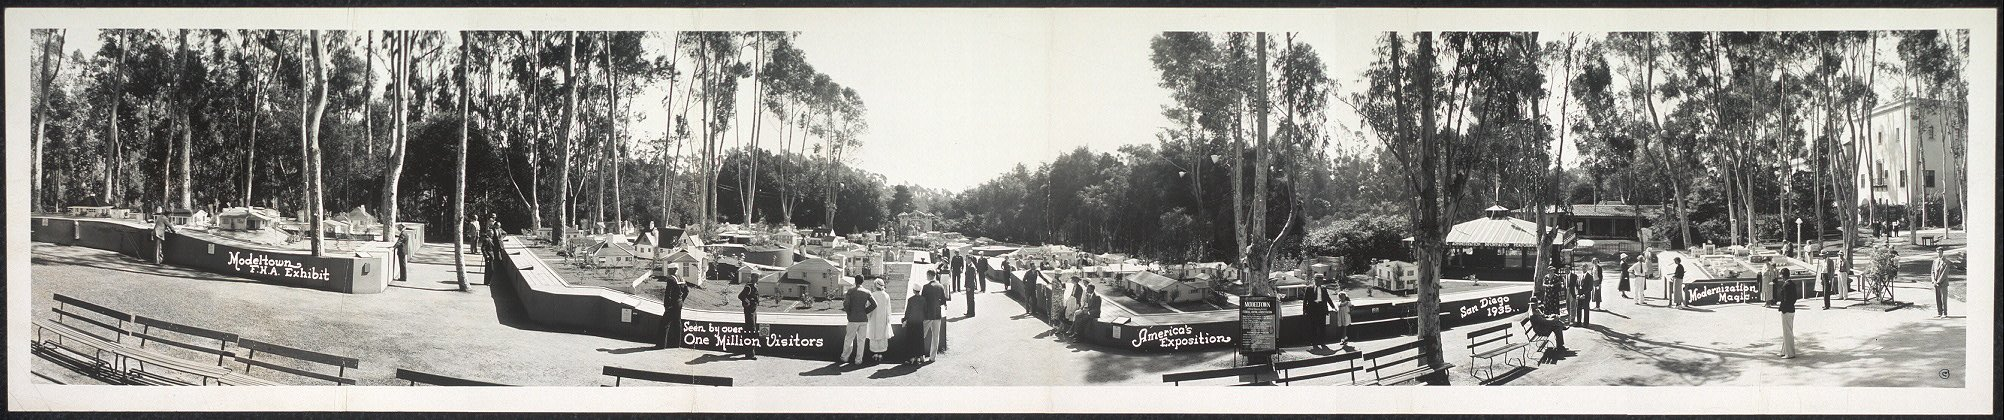 Photo Modeltown, F.H.A. Exhibit, seen by over one million visitors, America's Exposition, San Diego, 1935,